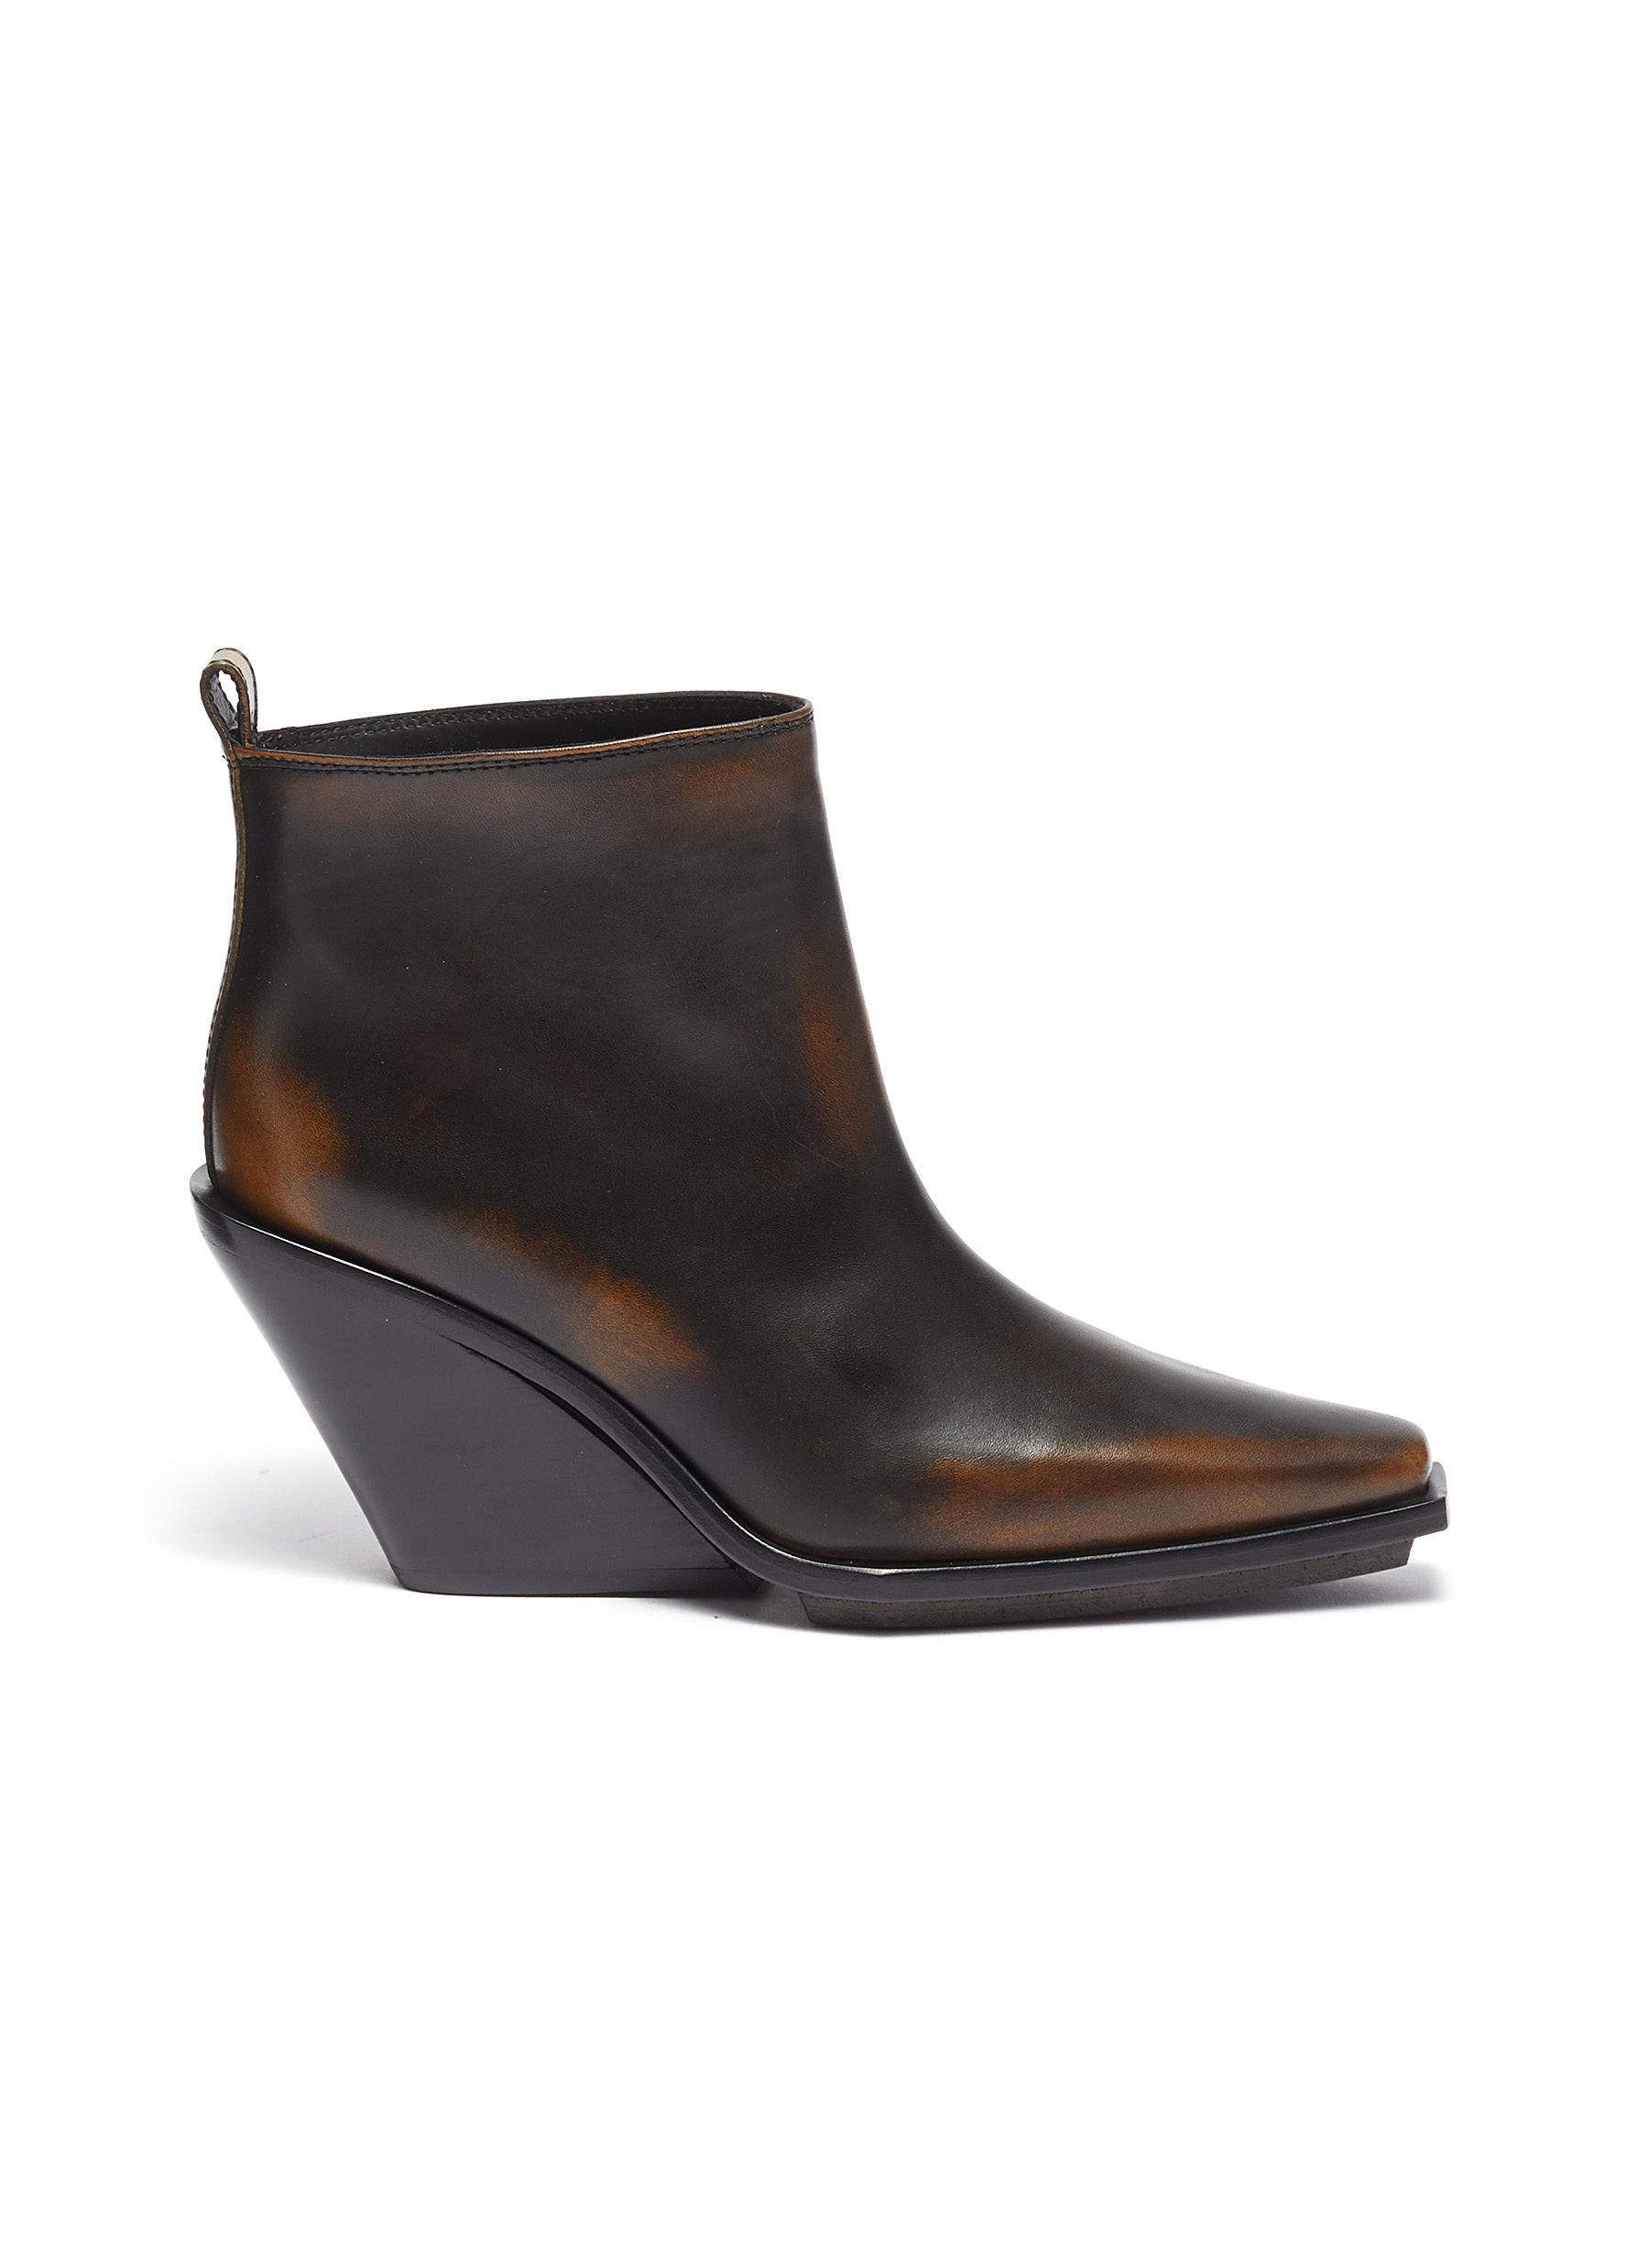 Distressed leather wedge ankle boots by Ann Demeulemeester